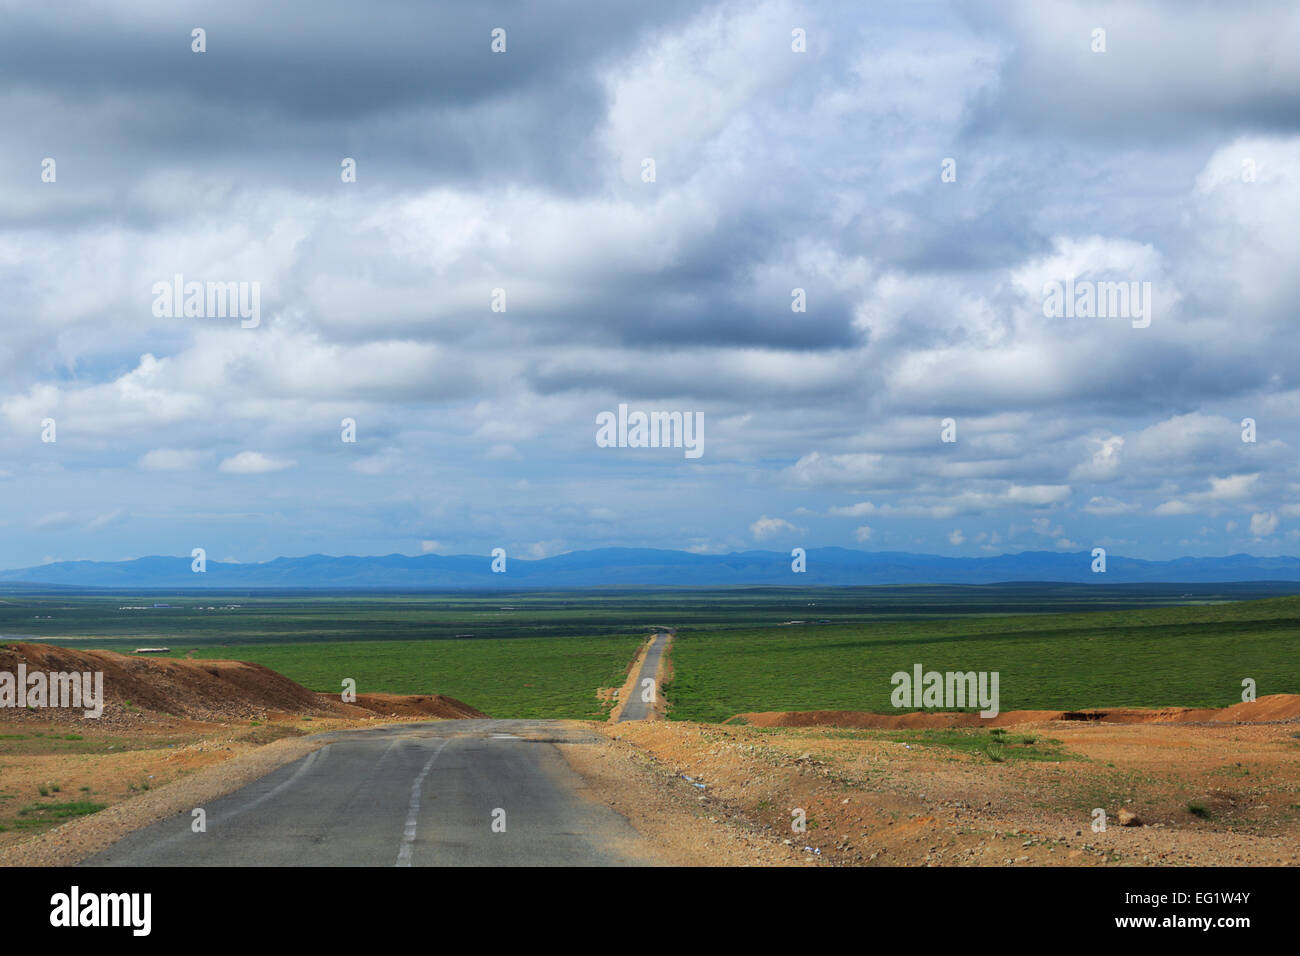 Road in steppe, Arkhangai province, Mongolia - Stock Image